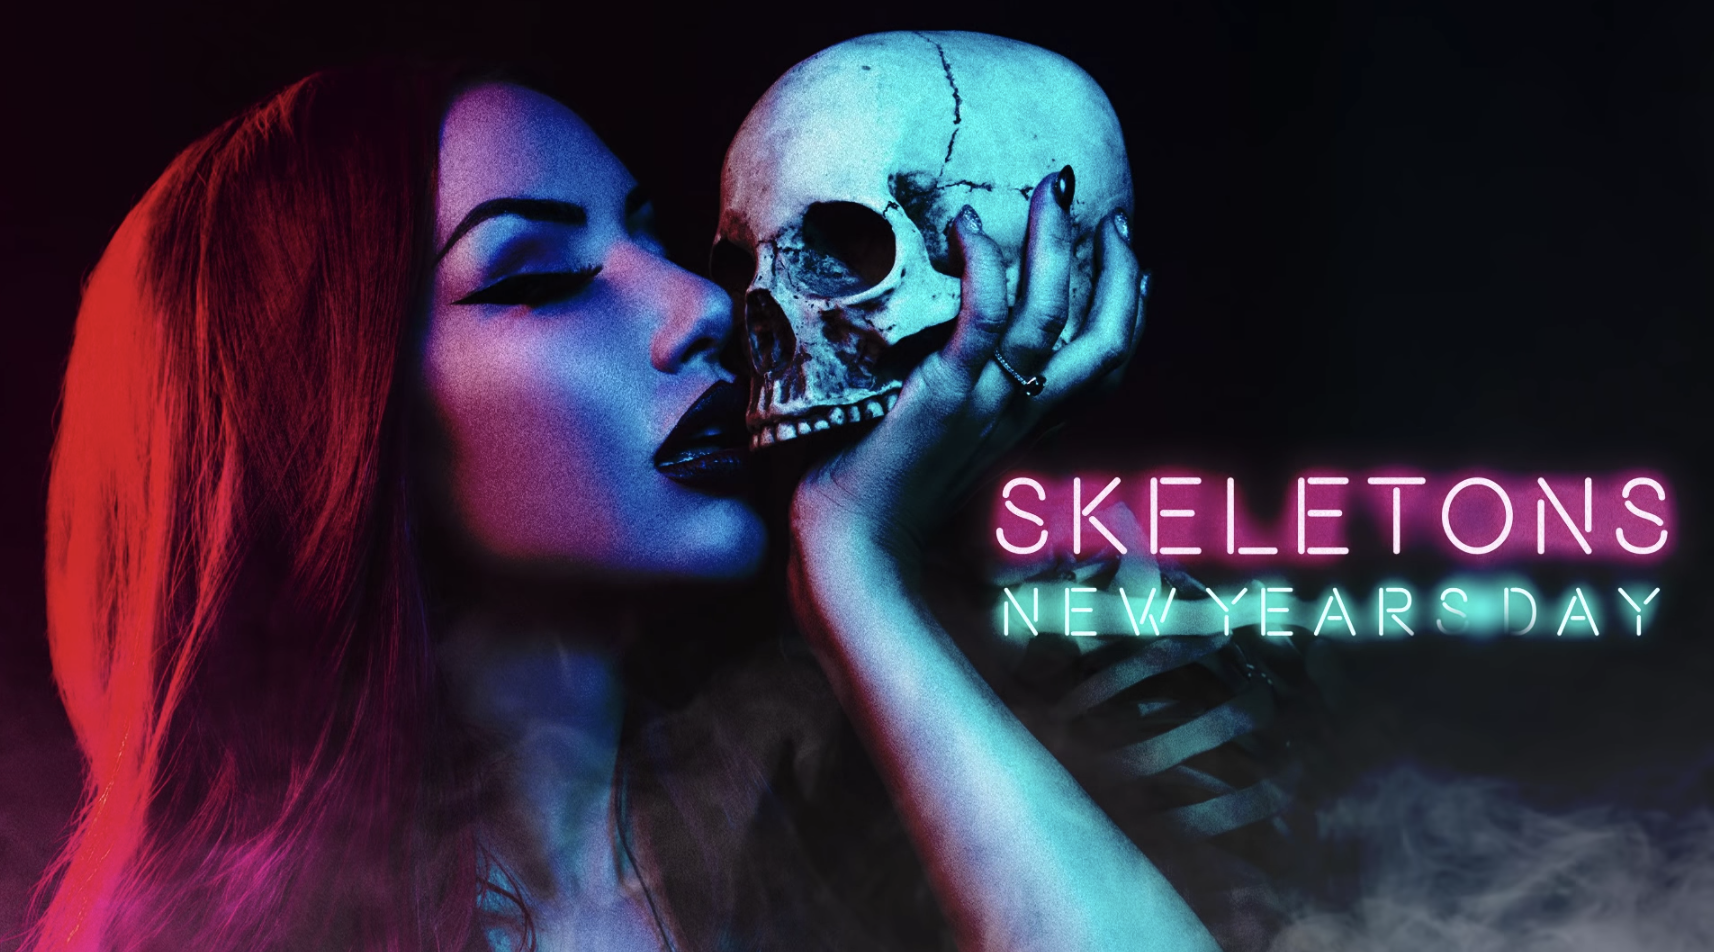 Listen To A Brand New Song From New Years Day Right Now ...